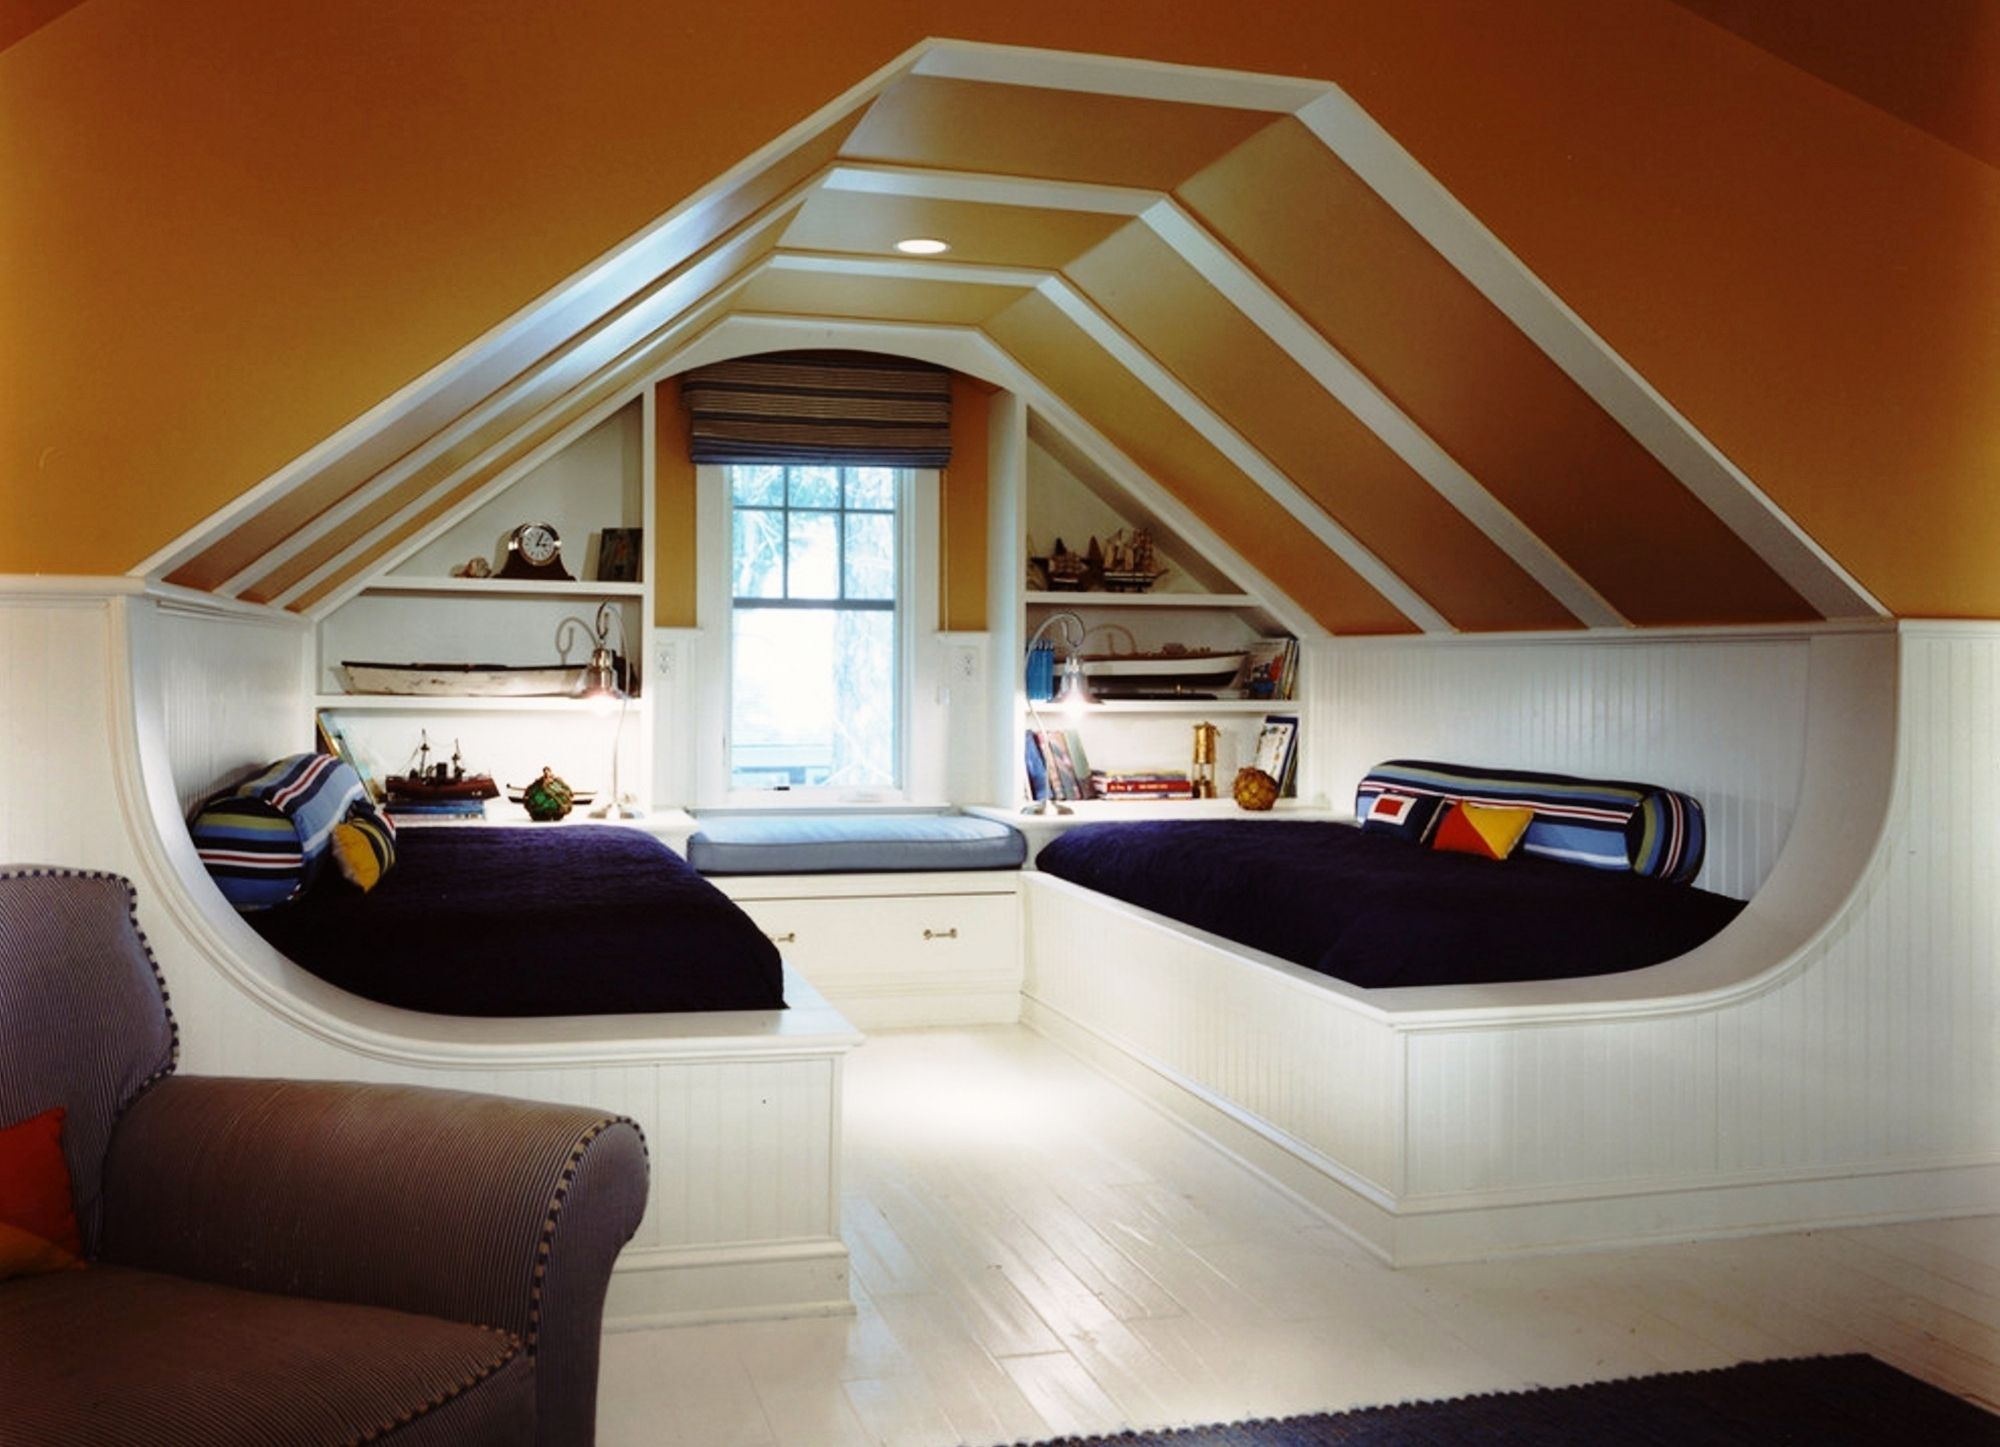 Ideas inspiration amusing guys attic bedroom double white bed frame built shelves brown painted sloped ceiling